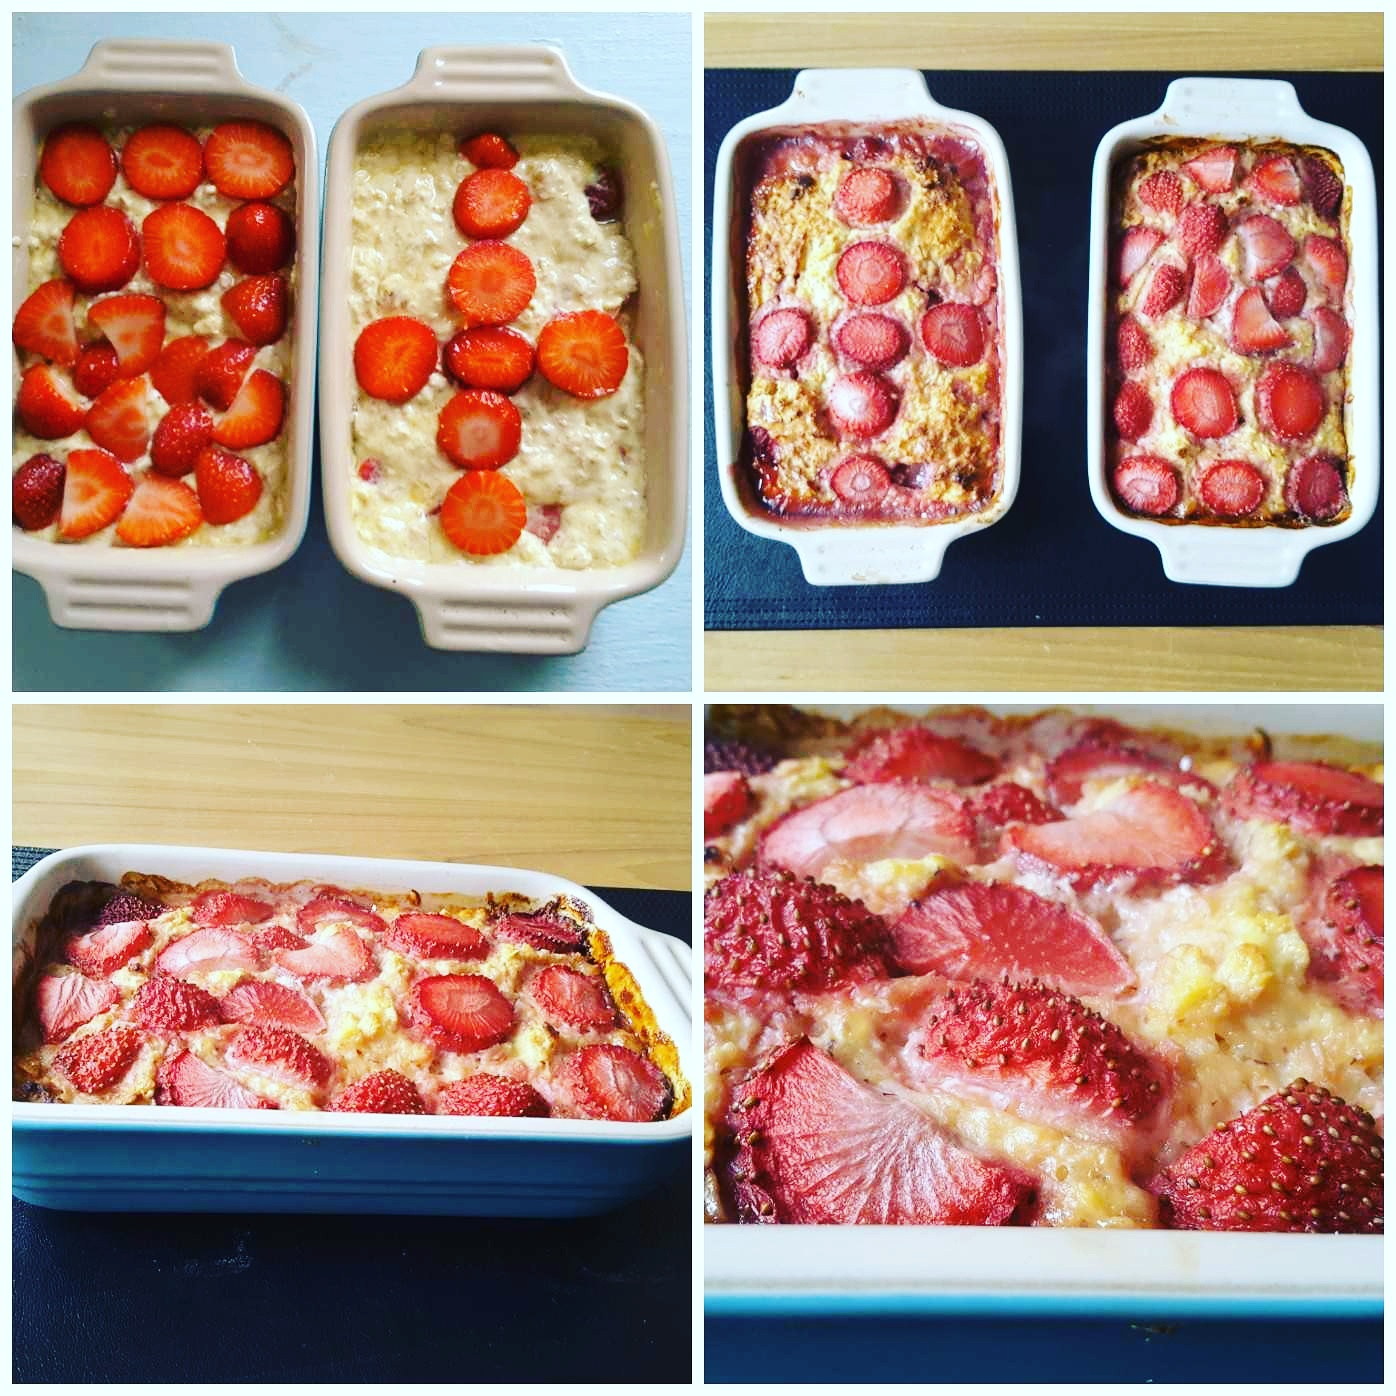 Strawberry n cream baked porridge